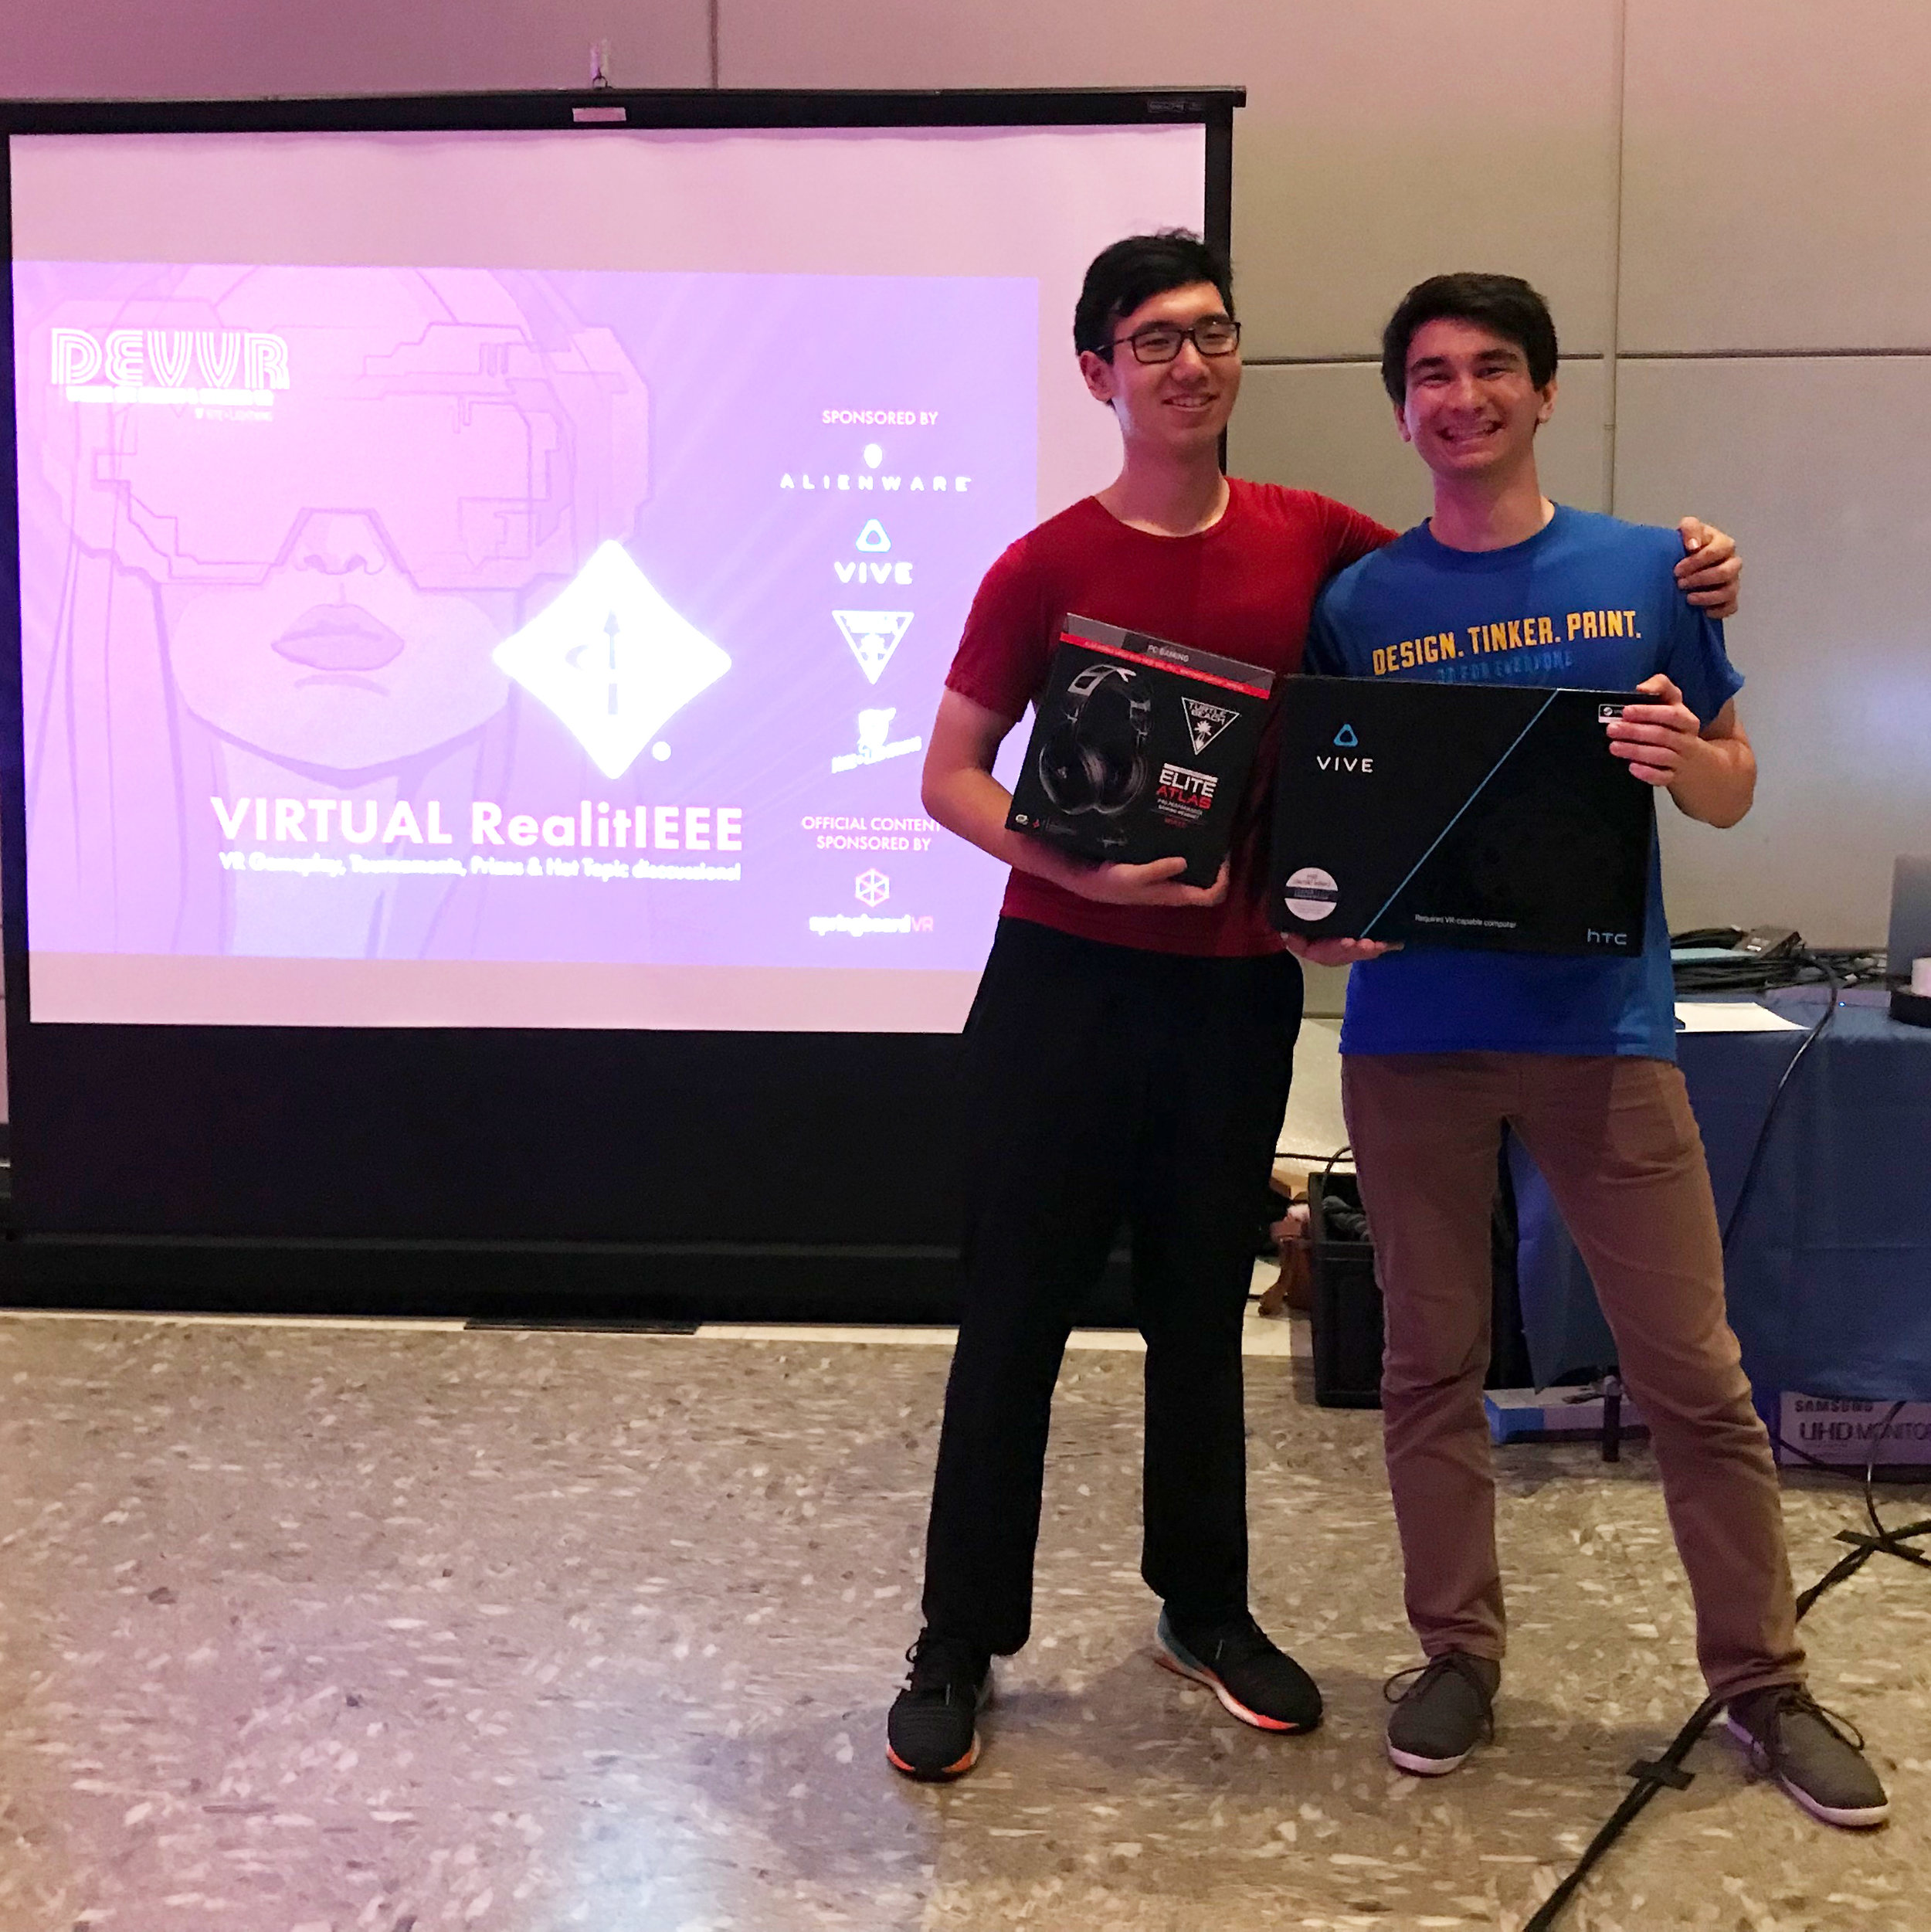 ma_dvr_ucla_photo_beatsaber_winners_3.jpg